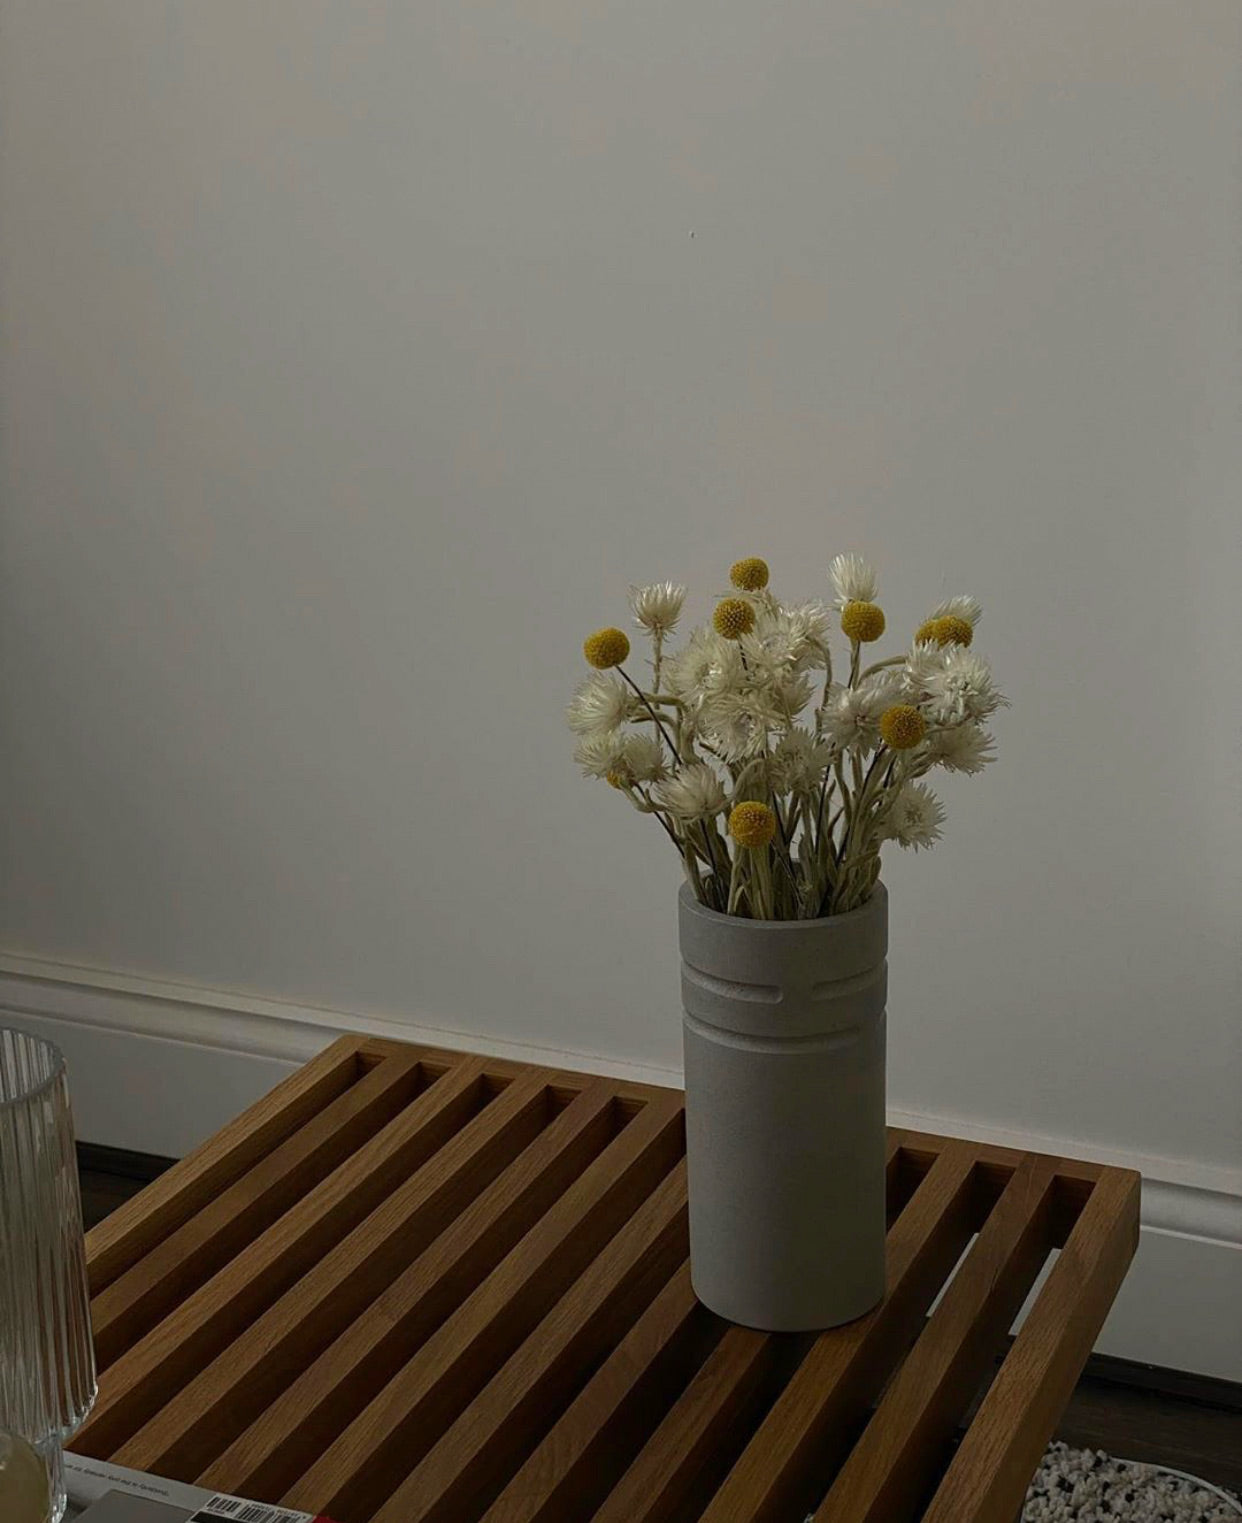 Grey jesmonite vase with preserved flower bouquet on a slatted wooden table